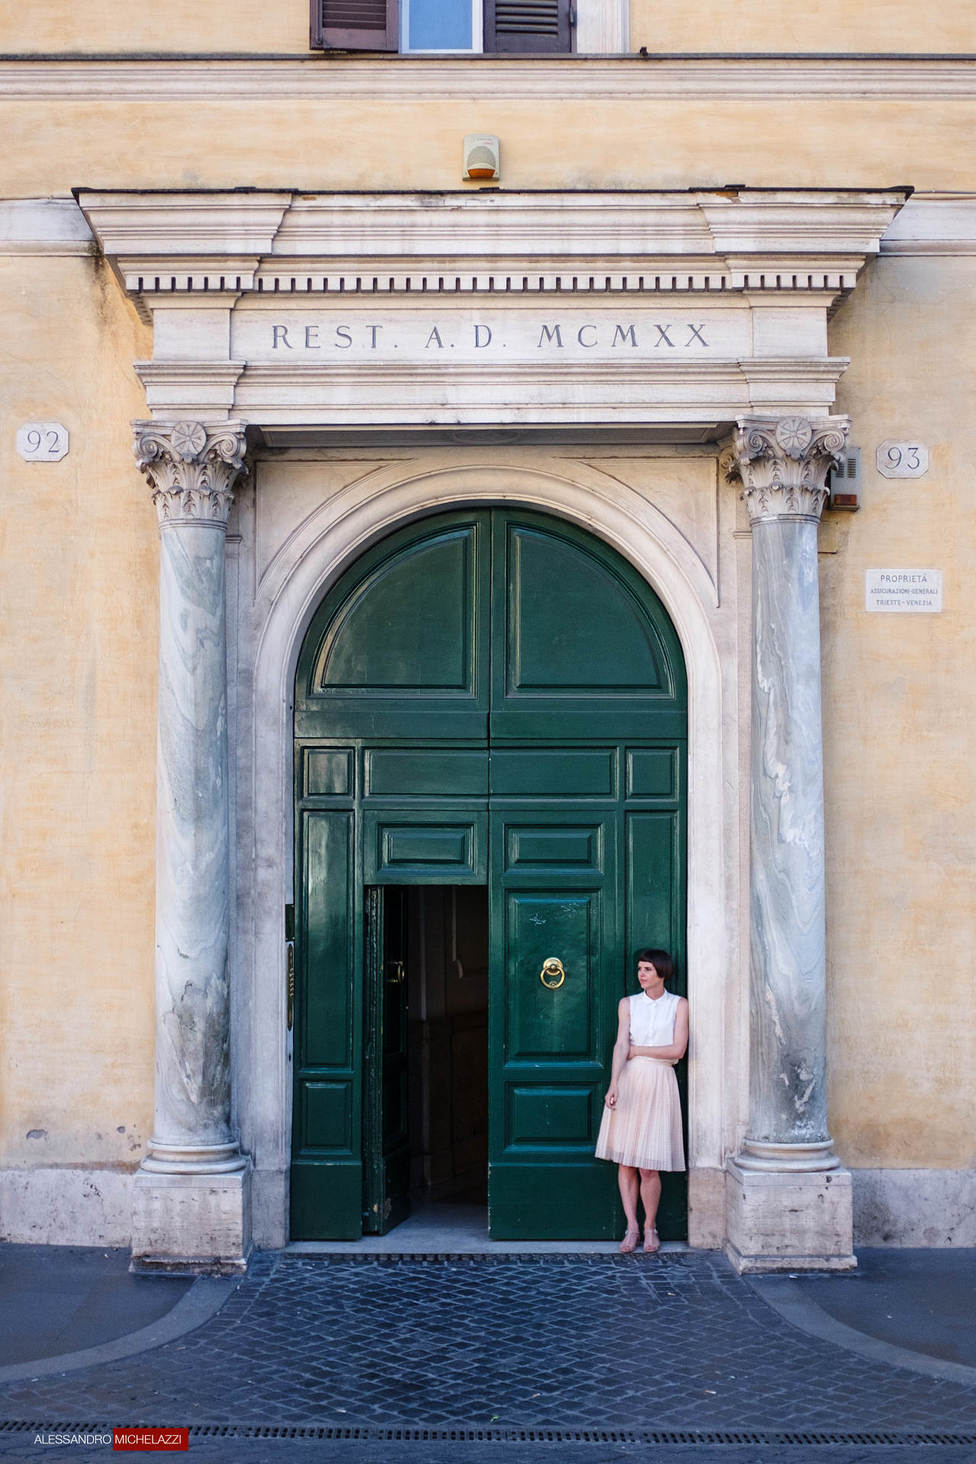 Lady waiting in front of a door in Rome